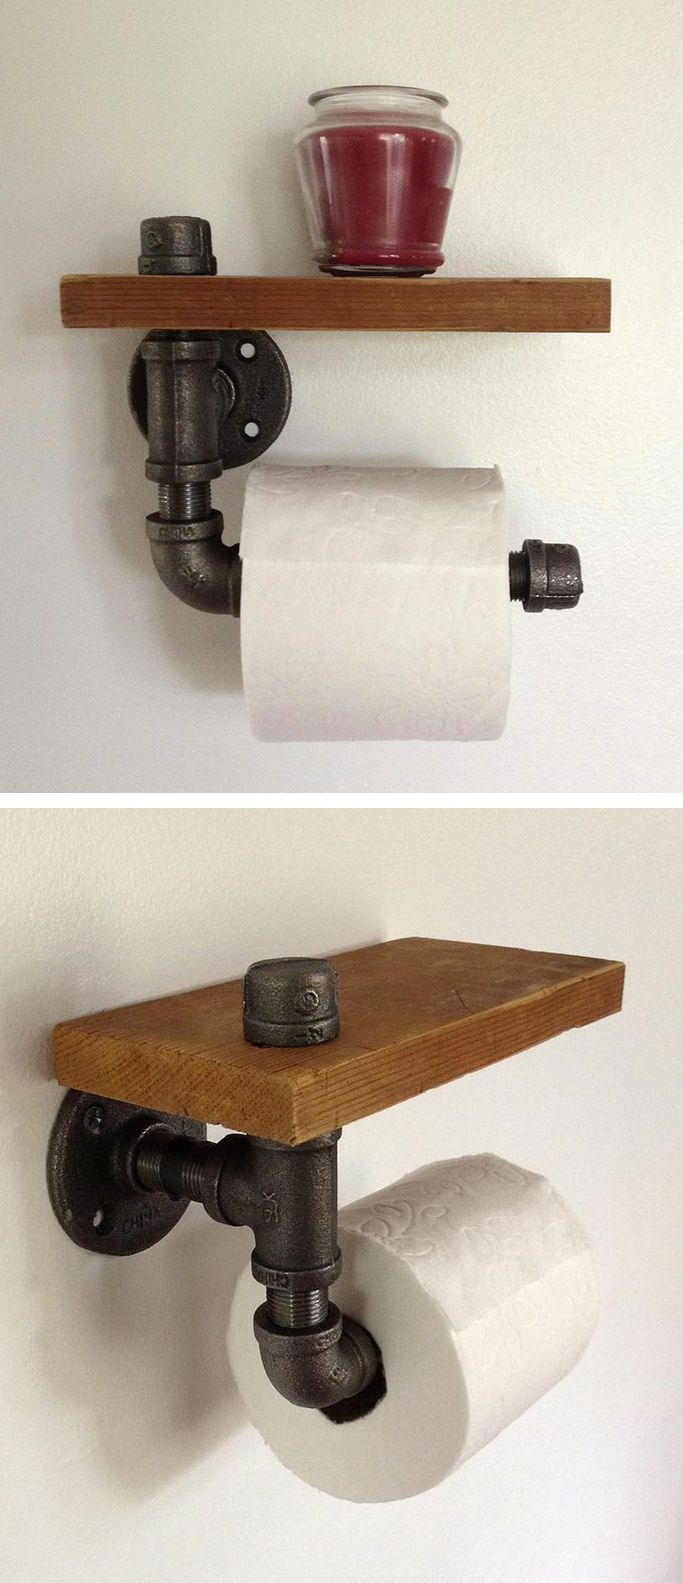 Reclaimed Wood & Pipe Toilet Paper Holder @Casey Dalene Dalene Dalene Dalene Dalene Crocker you could do this!